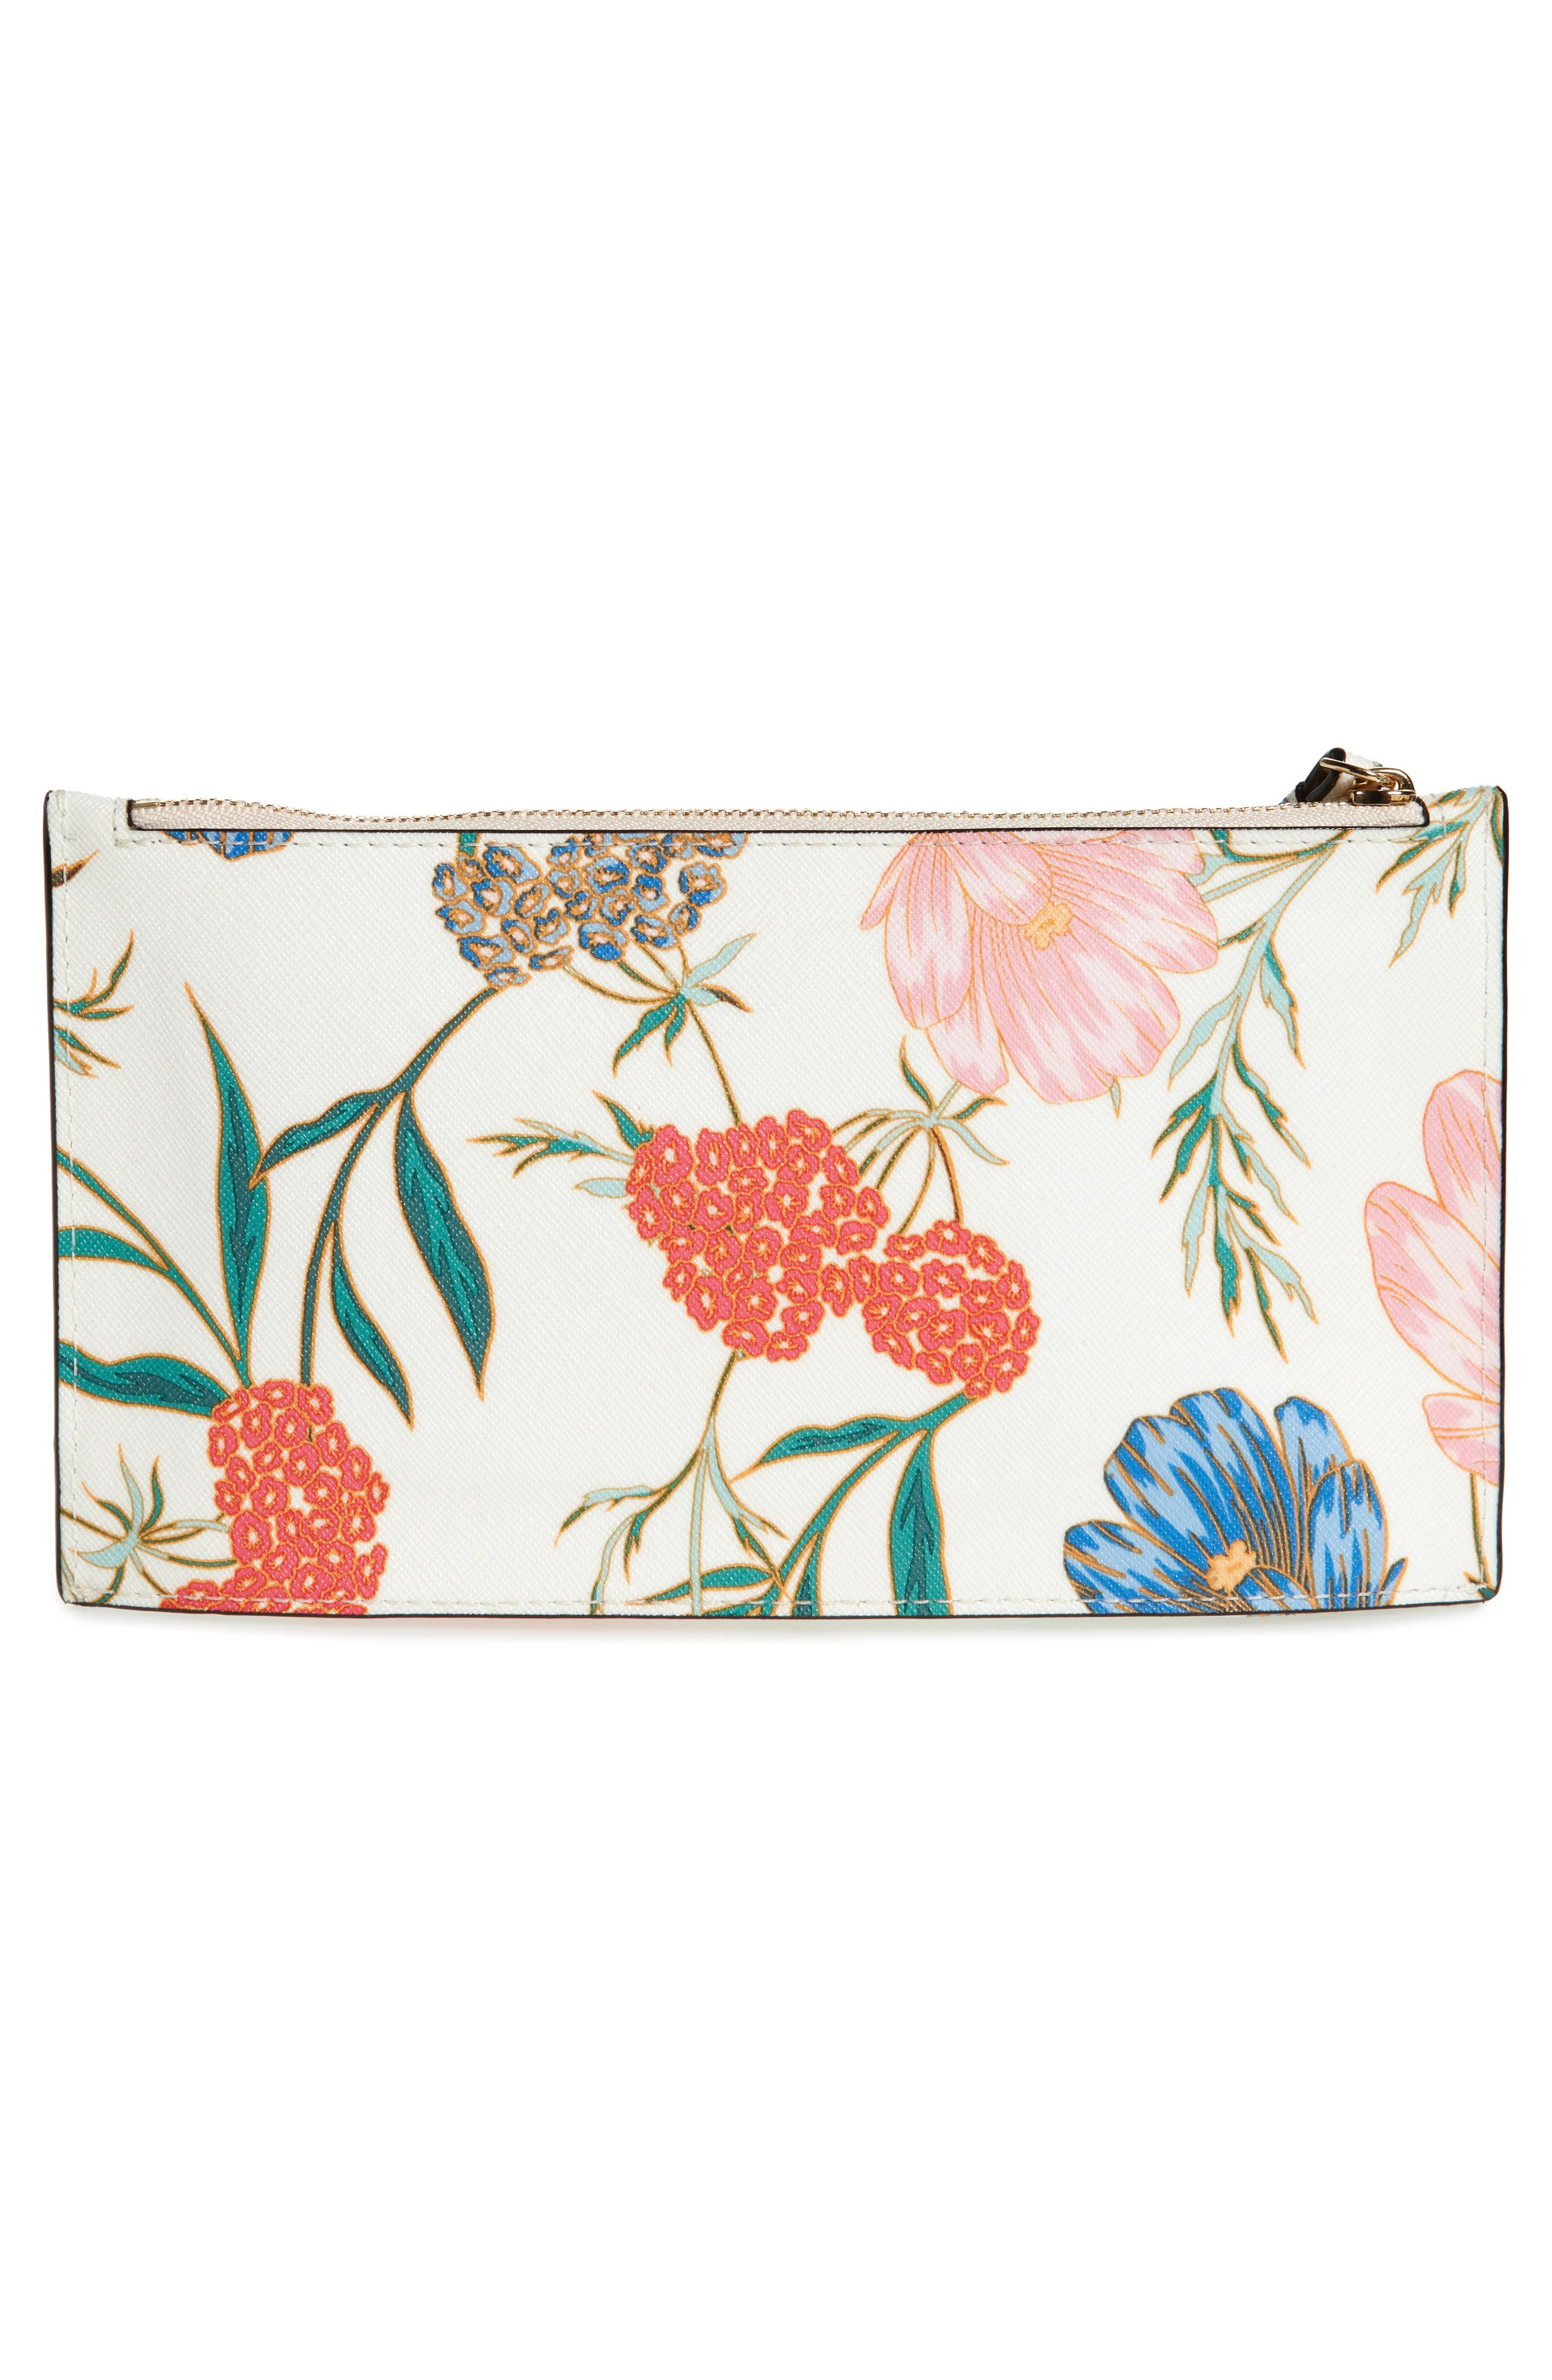 cameron street blossom ariah coated canvas pouch,                             Alternate thumbnail 3, color,                             Cream